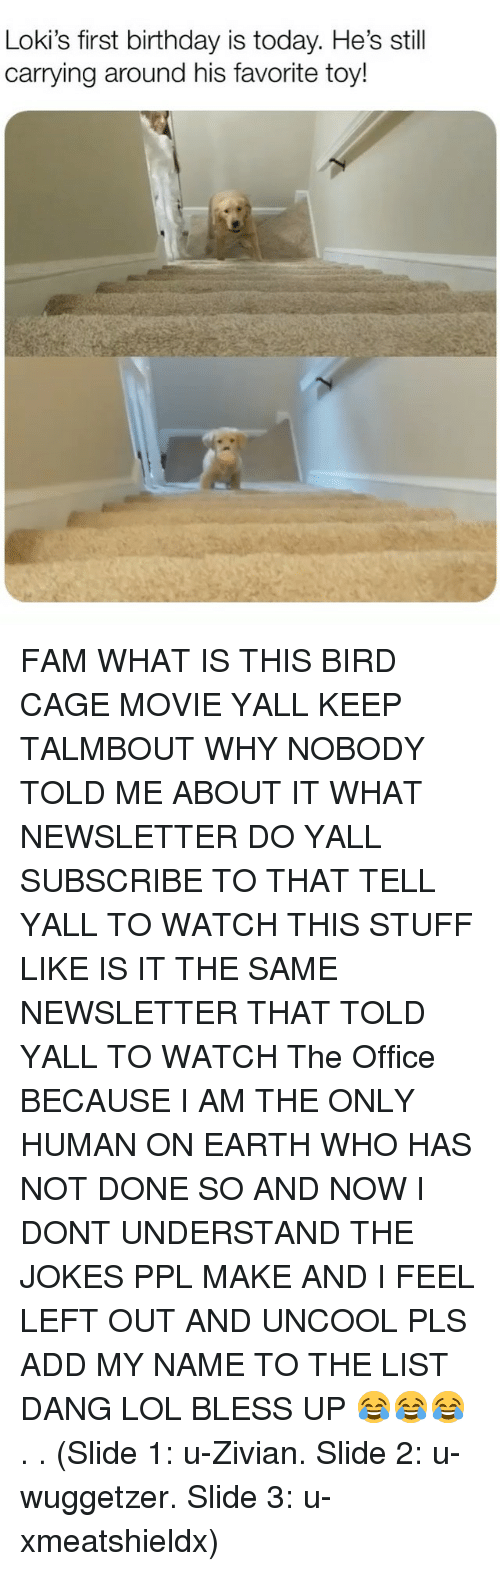 Bless up: Loki's first birthday is today. He's still  carrying around his favorite toy! FAM WHAT IS THIS BIRD CAGE MOVIE YALL KEEP TALMBOUT WHY NOBODY TOLD ME ABOUT IT WHAT NEWSLETTER DO YALL SUBSCRIBE TO THAT TELL YALL TO WATCH THIS STUFF LIKE IS IT THE SAME NEWSLETTER THAT TOLD YALL TO WATCH The Office BECAUSE I AM THE ONLY HUMAN ON EARTH WHO HAS NOT DONE SO AND NOW I DONT UNDERSTAND THE JOKES PPL MAKE AND I FEEL LEFT OUT AND UNCOOL PLS ADD MY NAME TO THE LIST DANG LOL BLESS UP 😂😂😂 . . (Slide 1: u-Zivian. Slide 2: u-wuggetzer. Slide 3: u-xmeatshieldx)